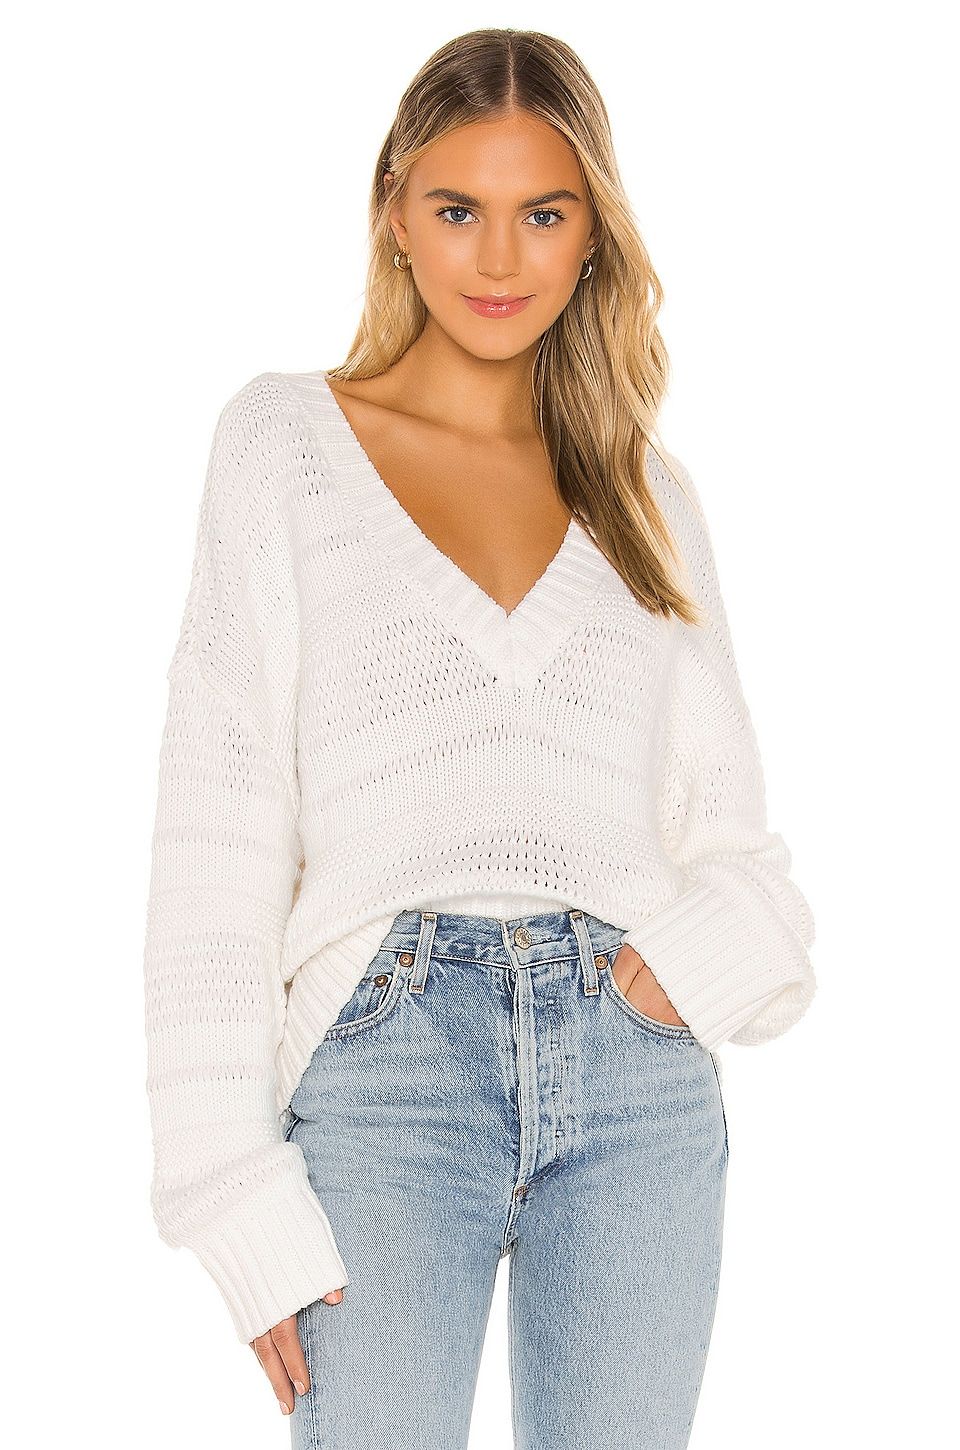 House of Harlow 1960 x REVOLVE Conor Sweater in White